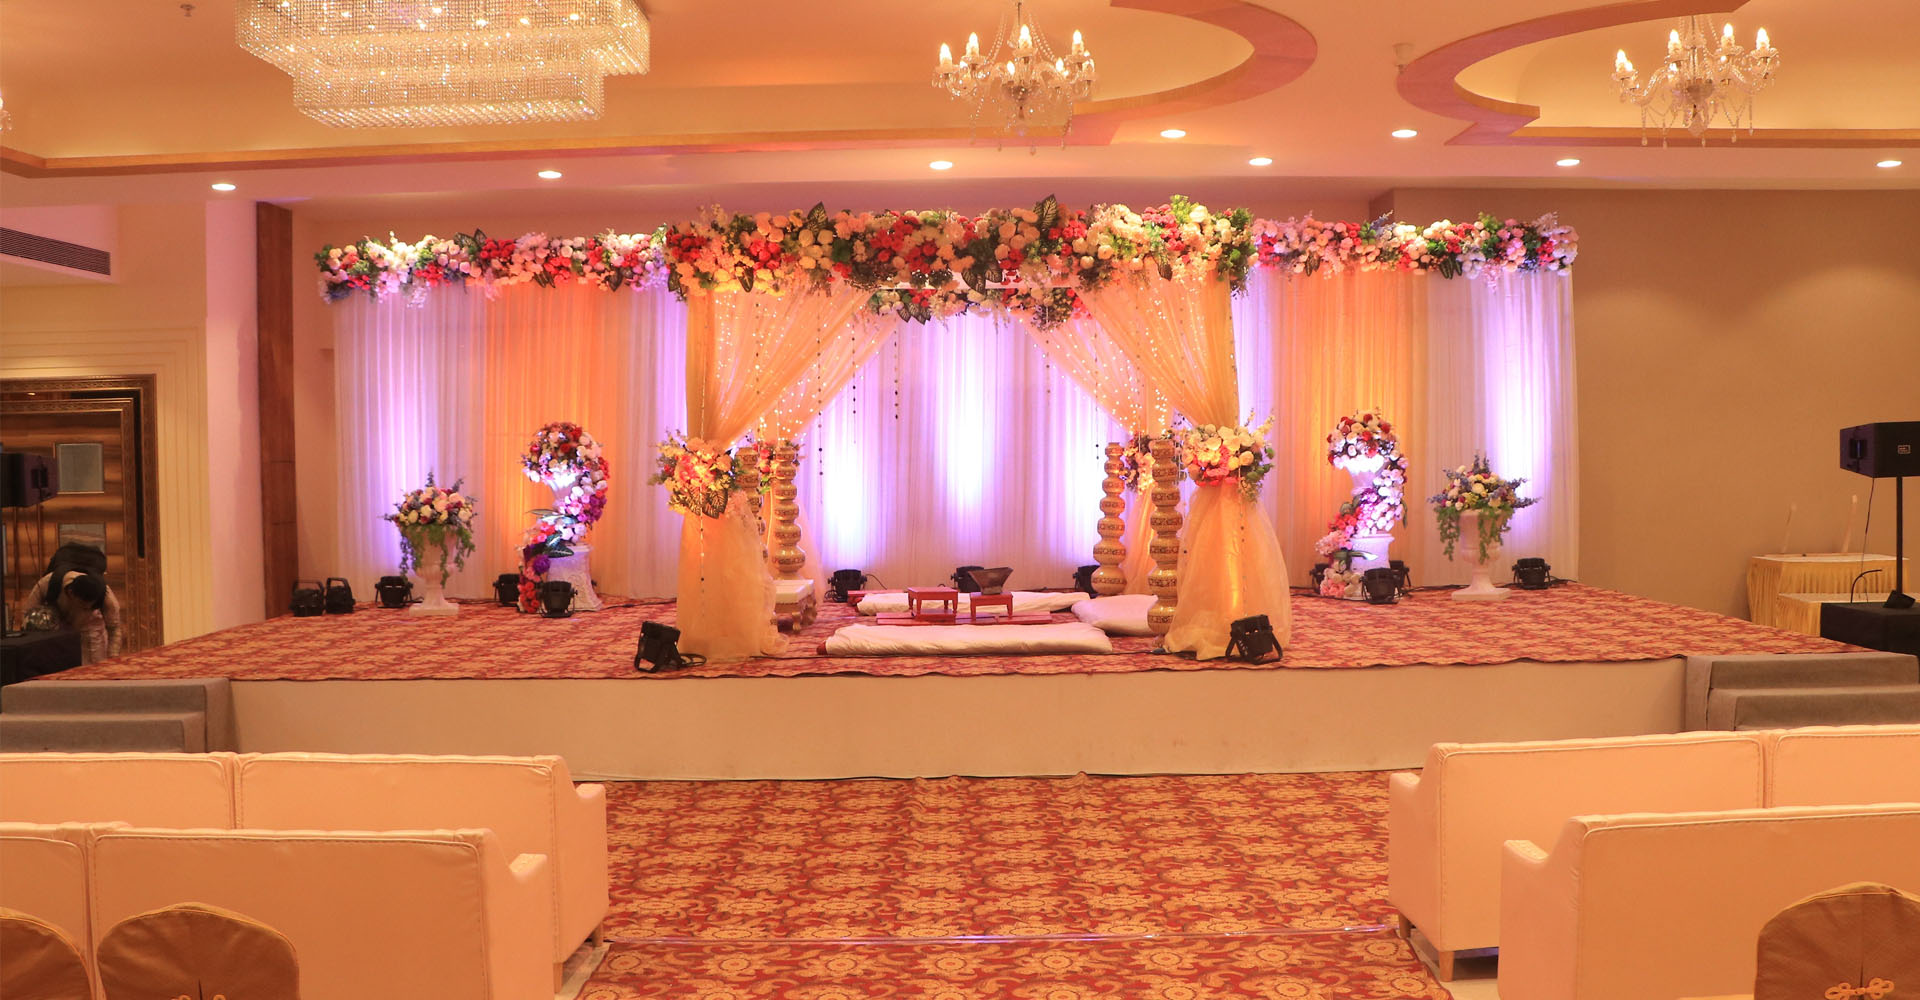 Best Banquet Hall for Wedding & Events